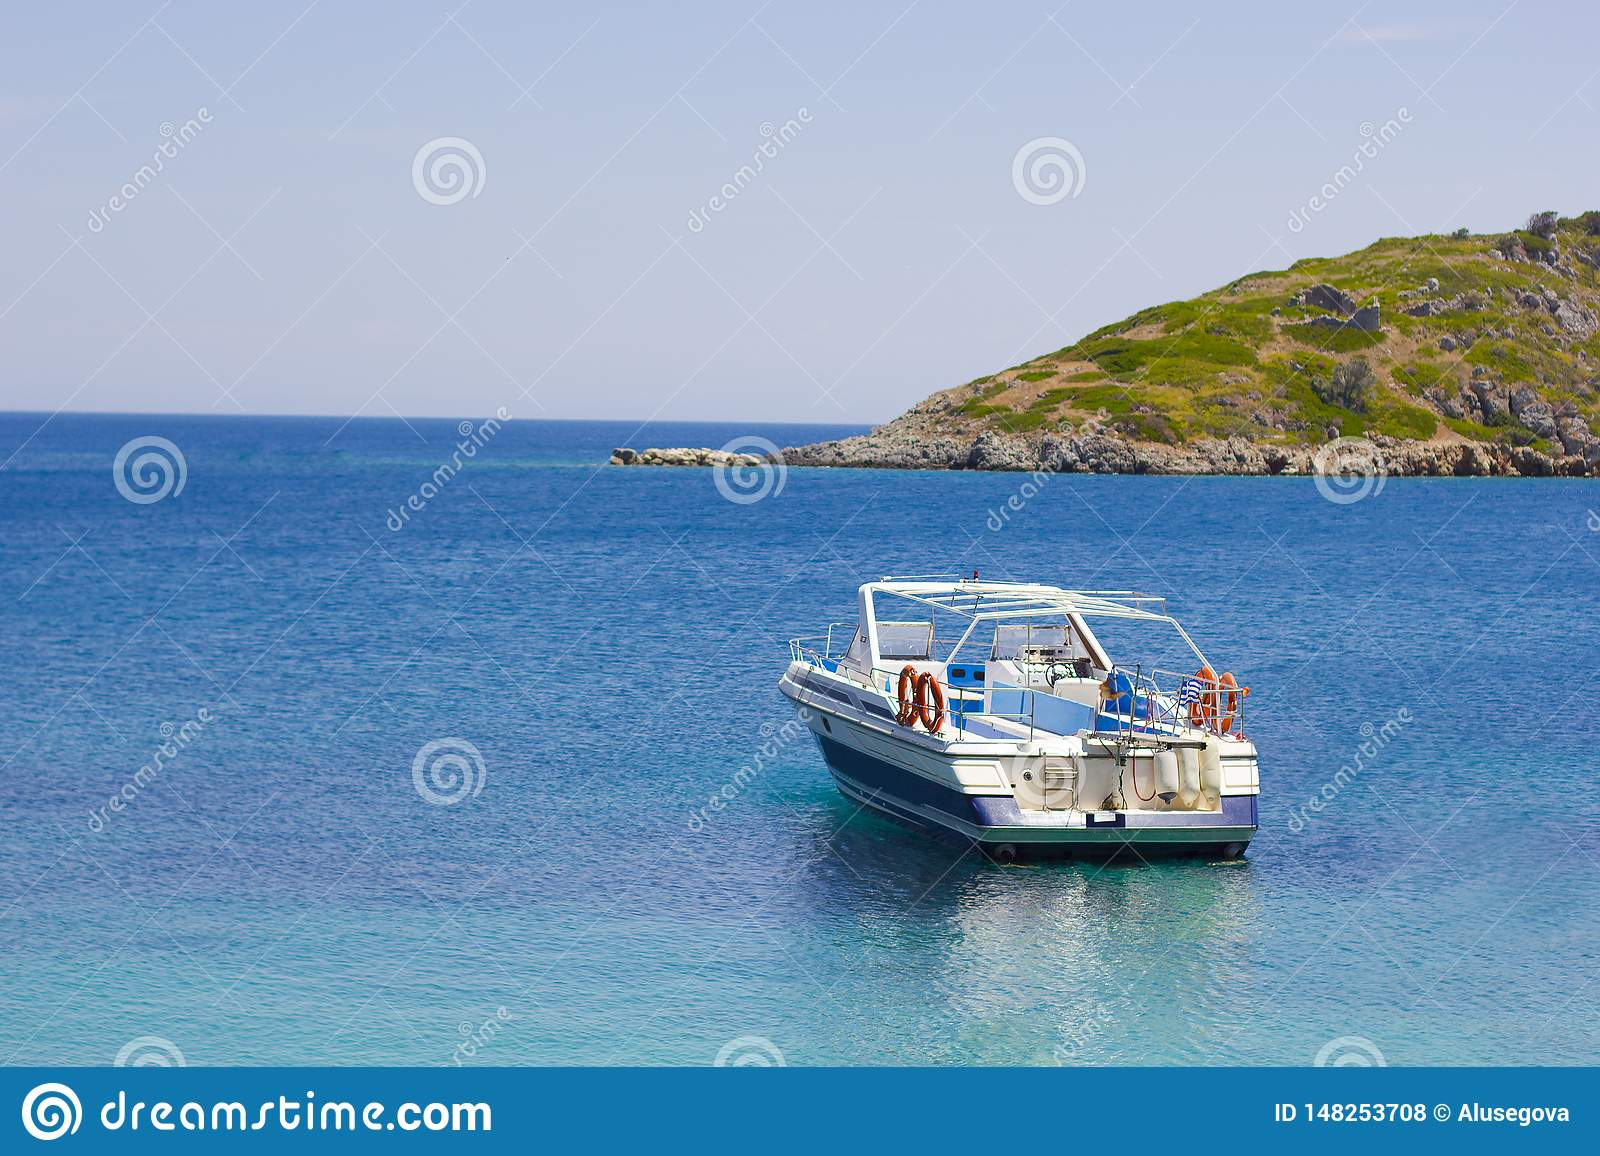 Boat in blue sea on a coastline